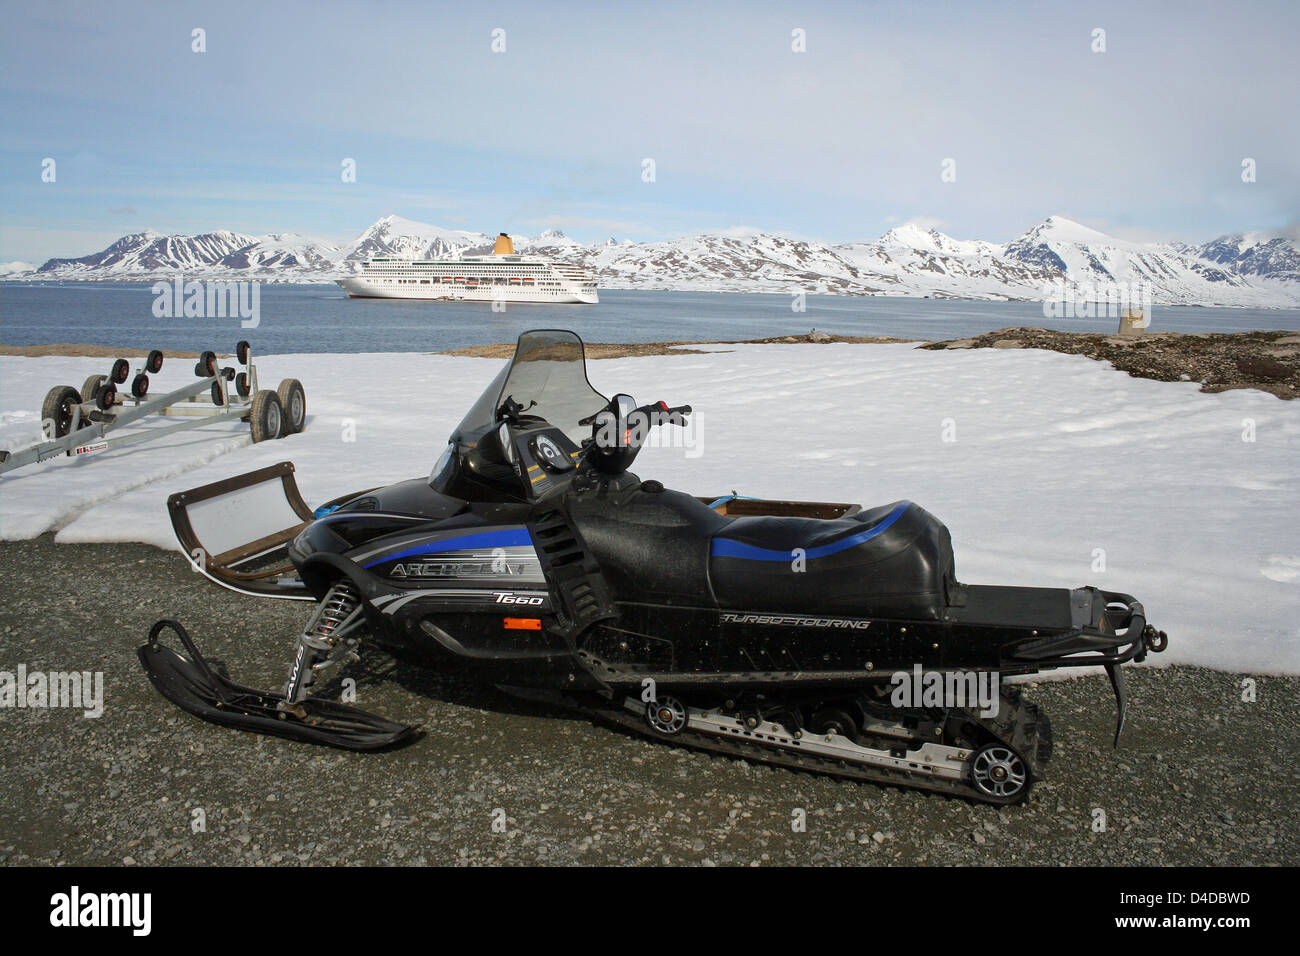 A snowmobile parked in the settlement of Ny Alesund, Spitzbergen, with the cruise liner Aurora anchored in the background. - Stock Image